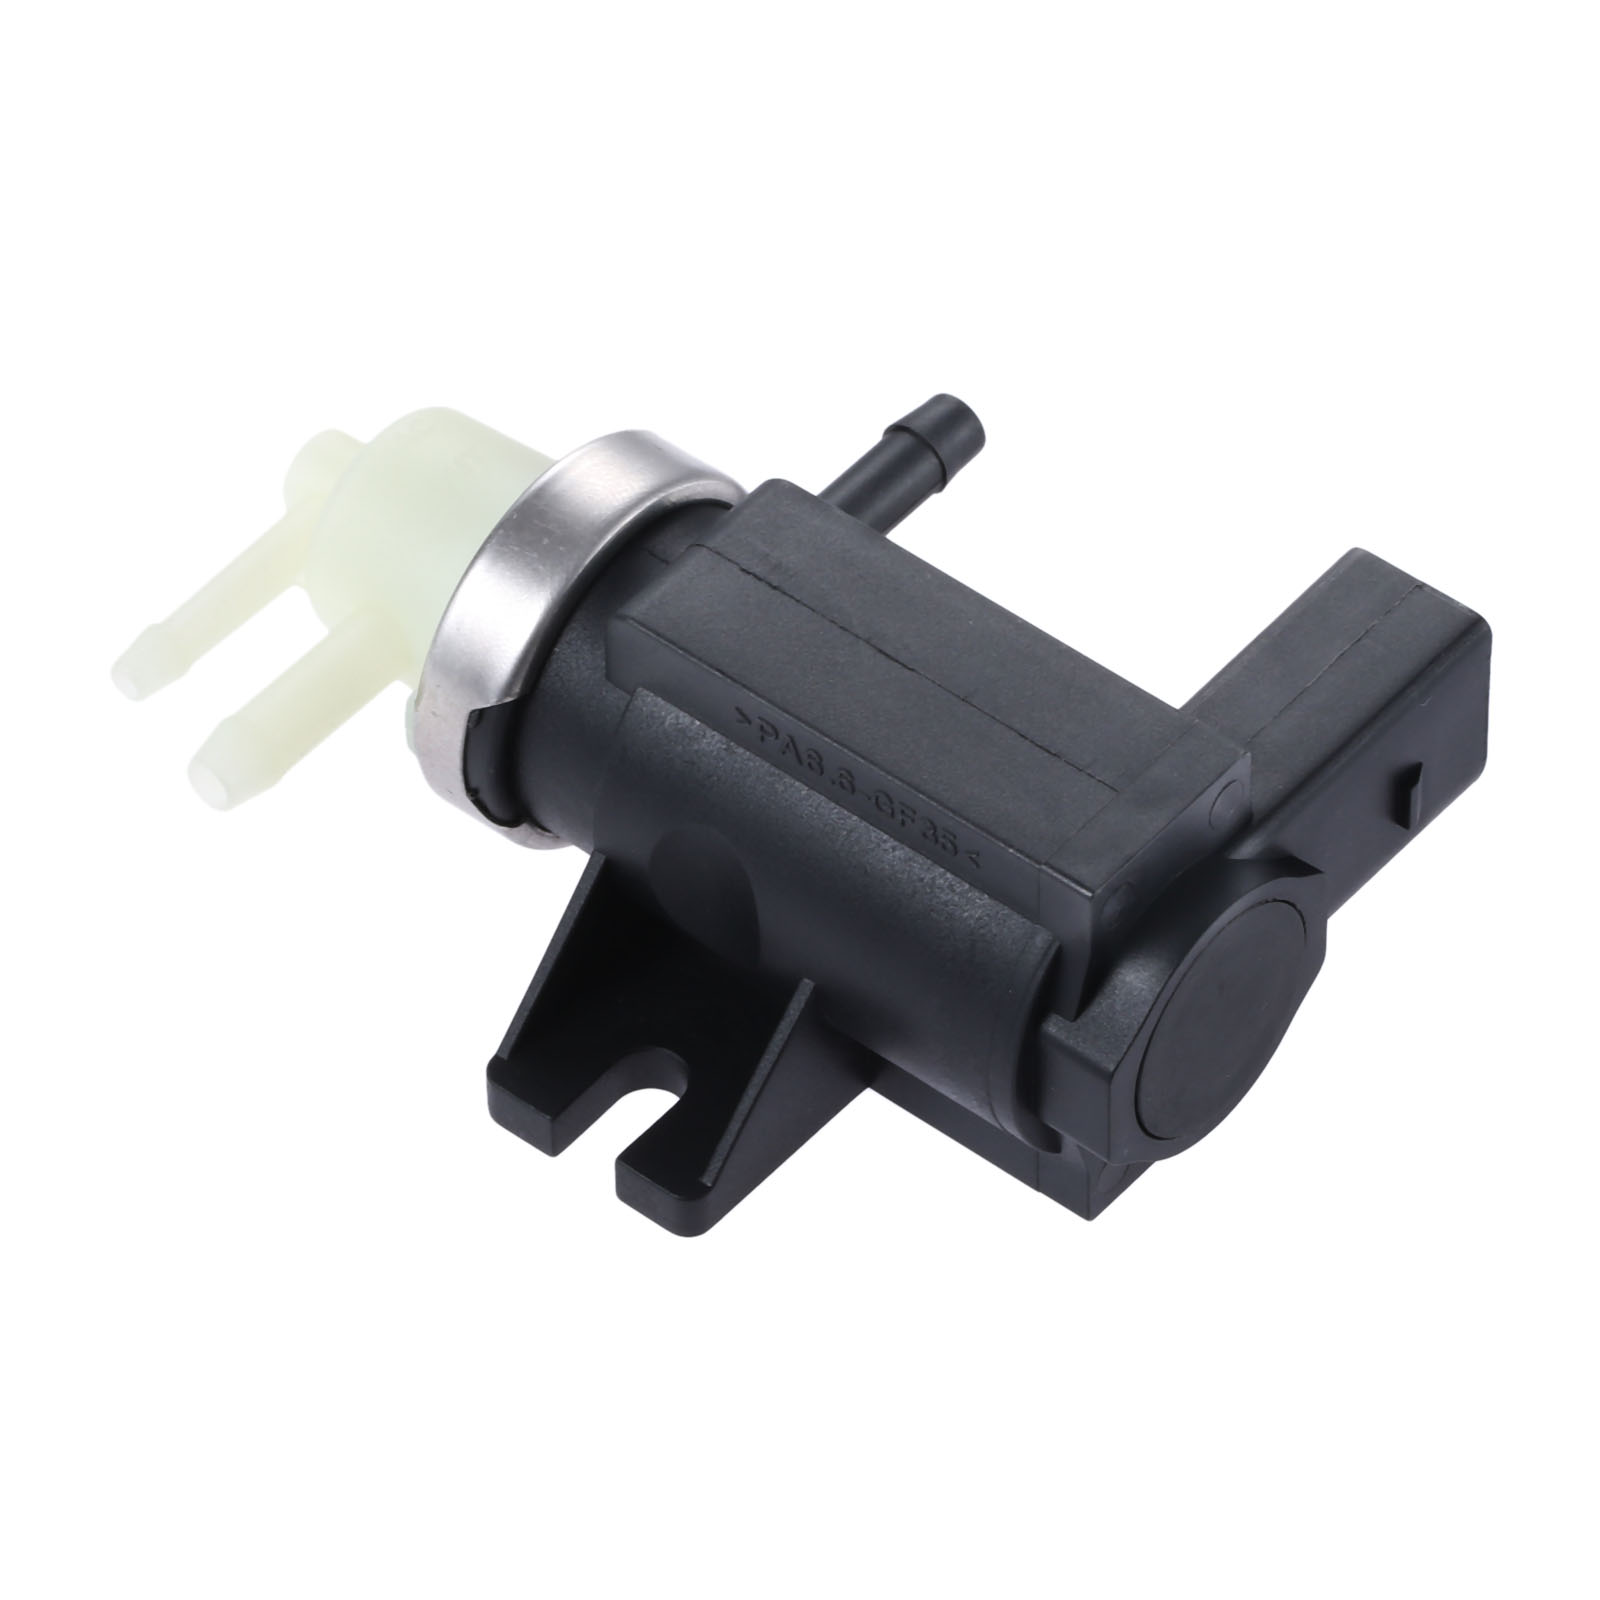 Image 3 - Yetaha 1J0906627A New Boost Pressure Solenoid Converter Valve For VW For Jetta Sedan Wagon TDI Passat Beetle Golf TDI 2000 2006-in Exhaust Gas Recirculation Valve from Automobiles & Motorcycles